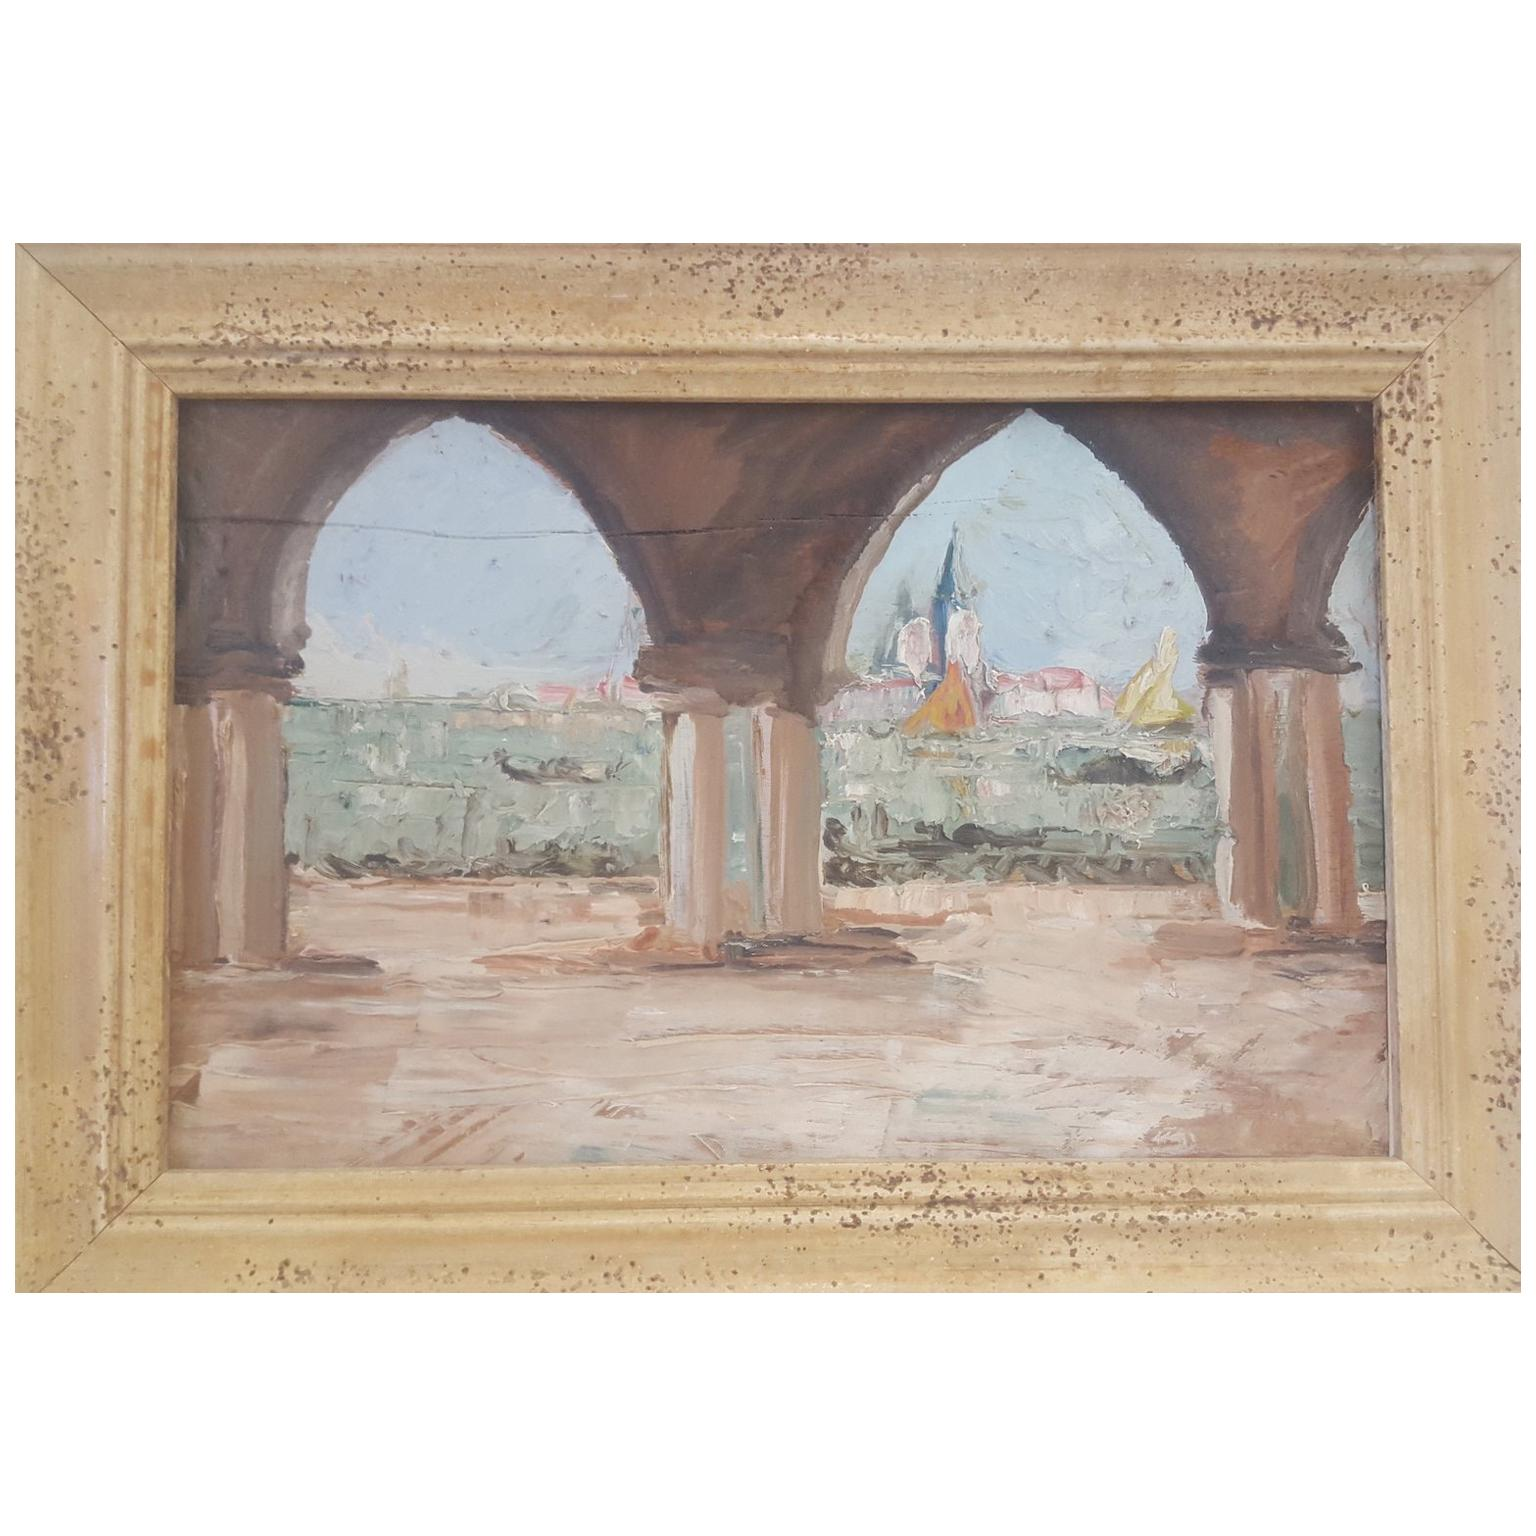 20th Century Oil Painting on Wood Board of Venice, Italy, Signed on the Reverse